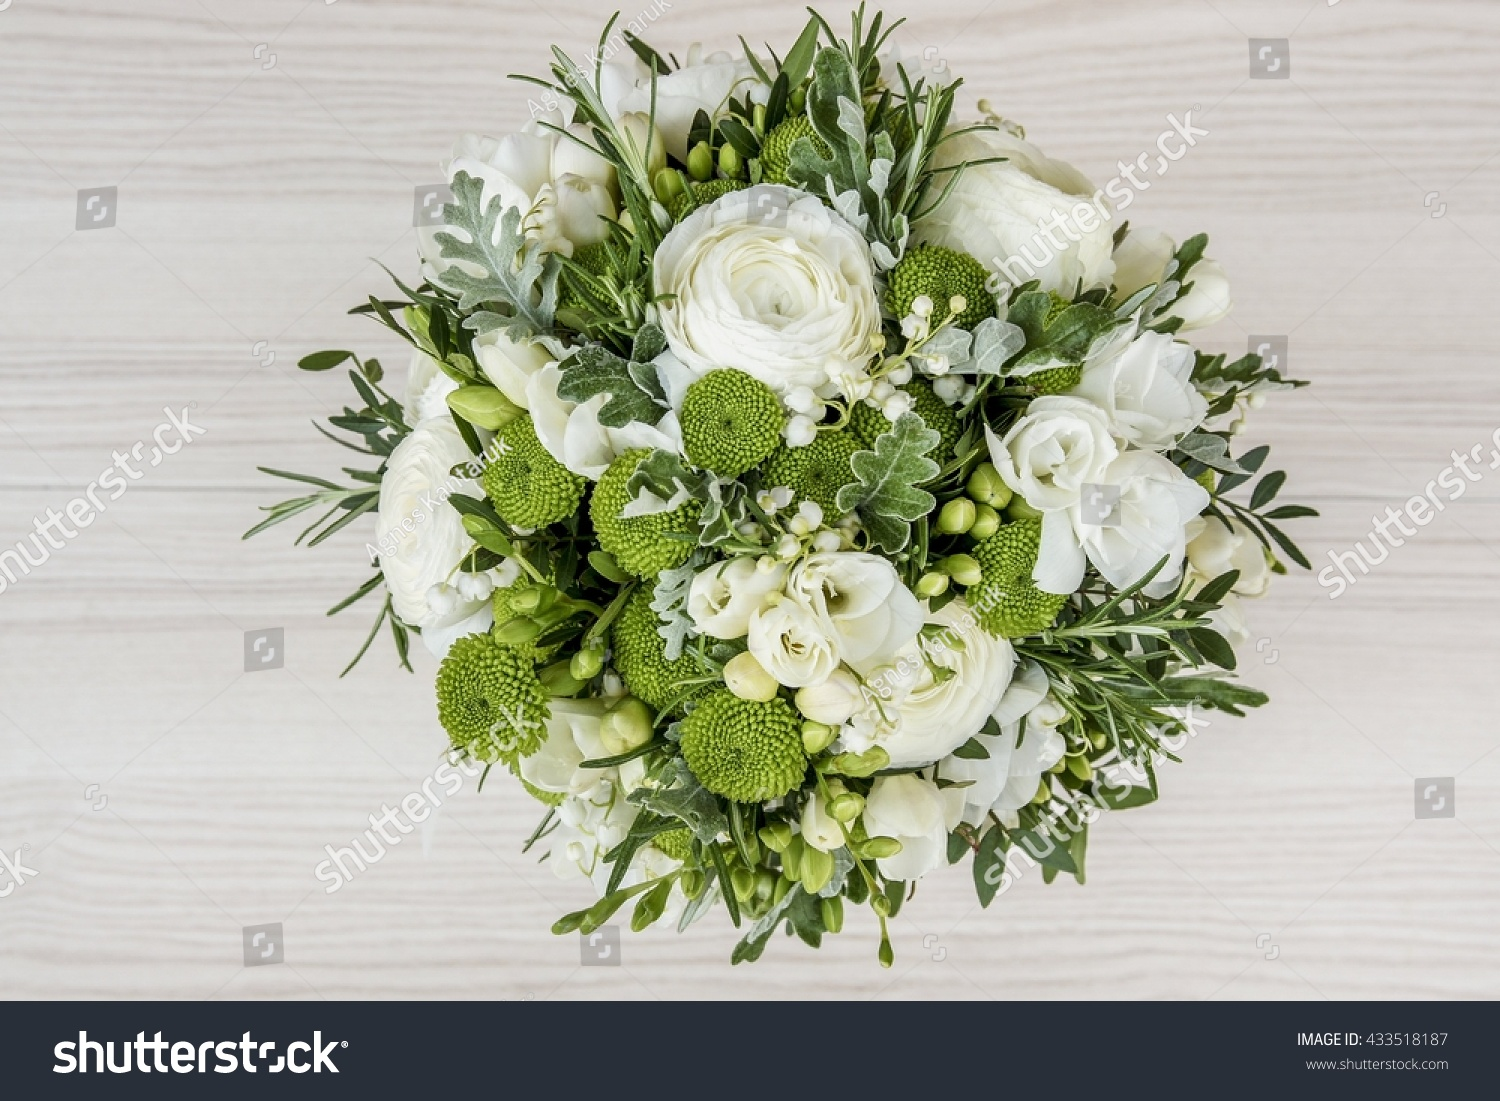 Wedding Bouquet White Flowers Green Leaves Stock Photo Royalty Free